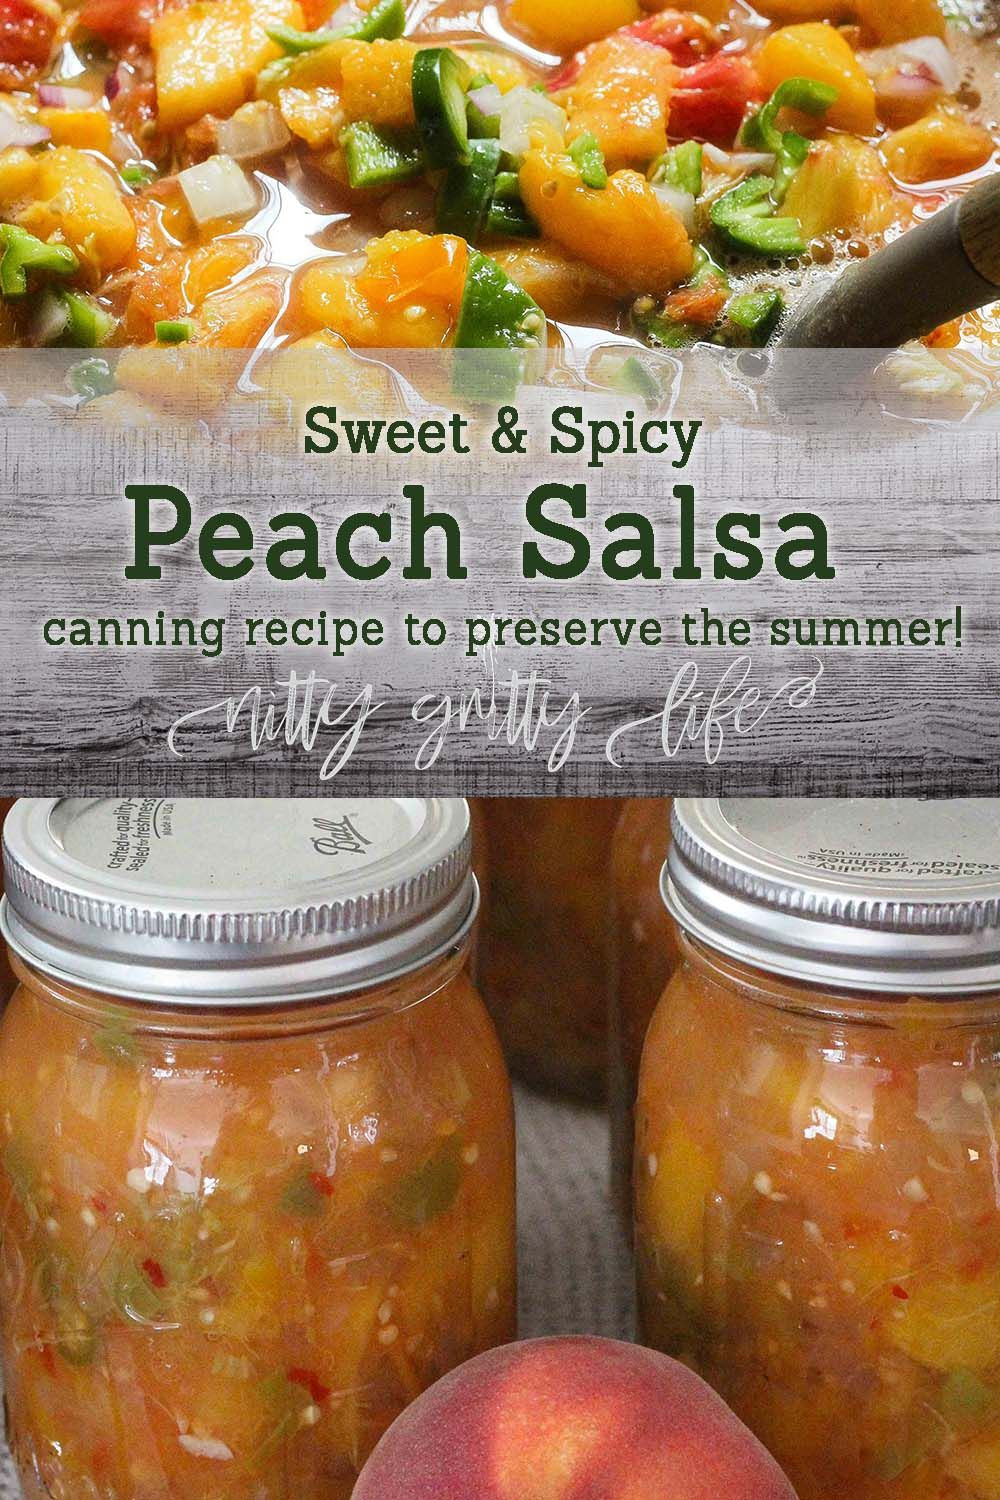 Peach Salsa Recipe For Canning  Sweet & Spicy Peach Salsa Canning Recipe